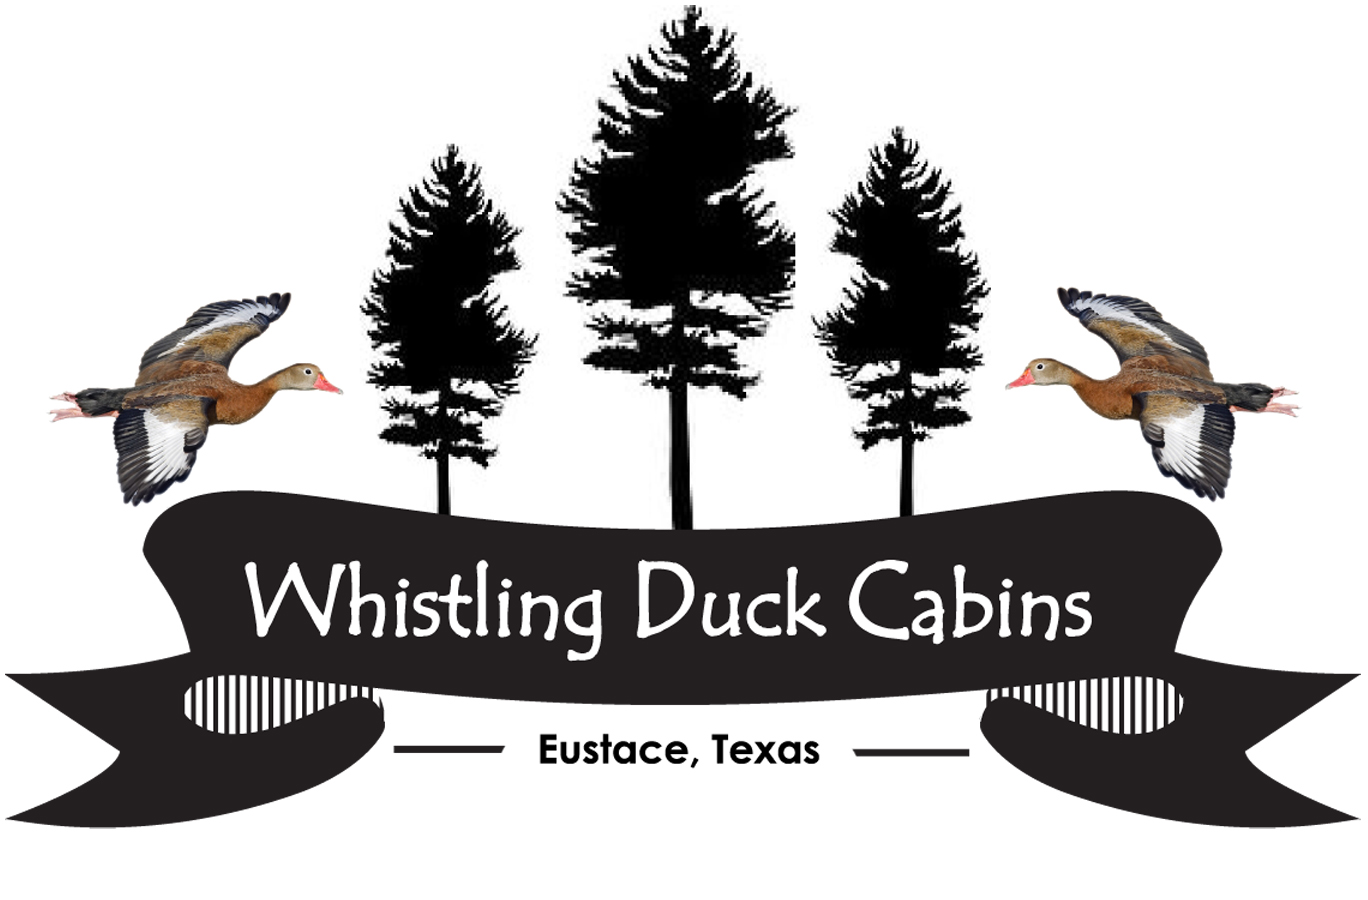 Whistling Duck Cabins